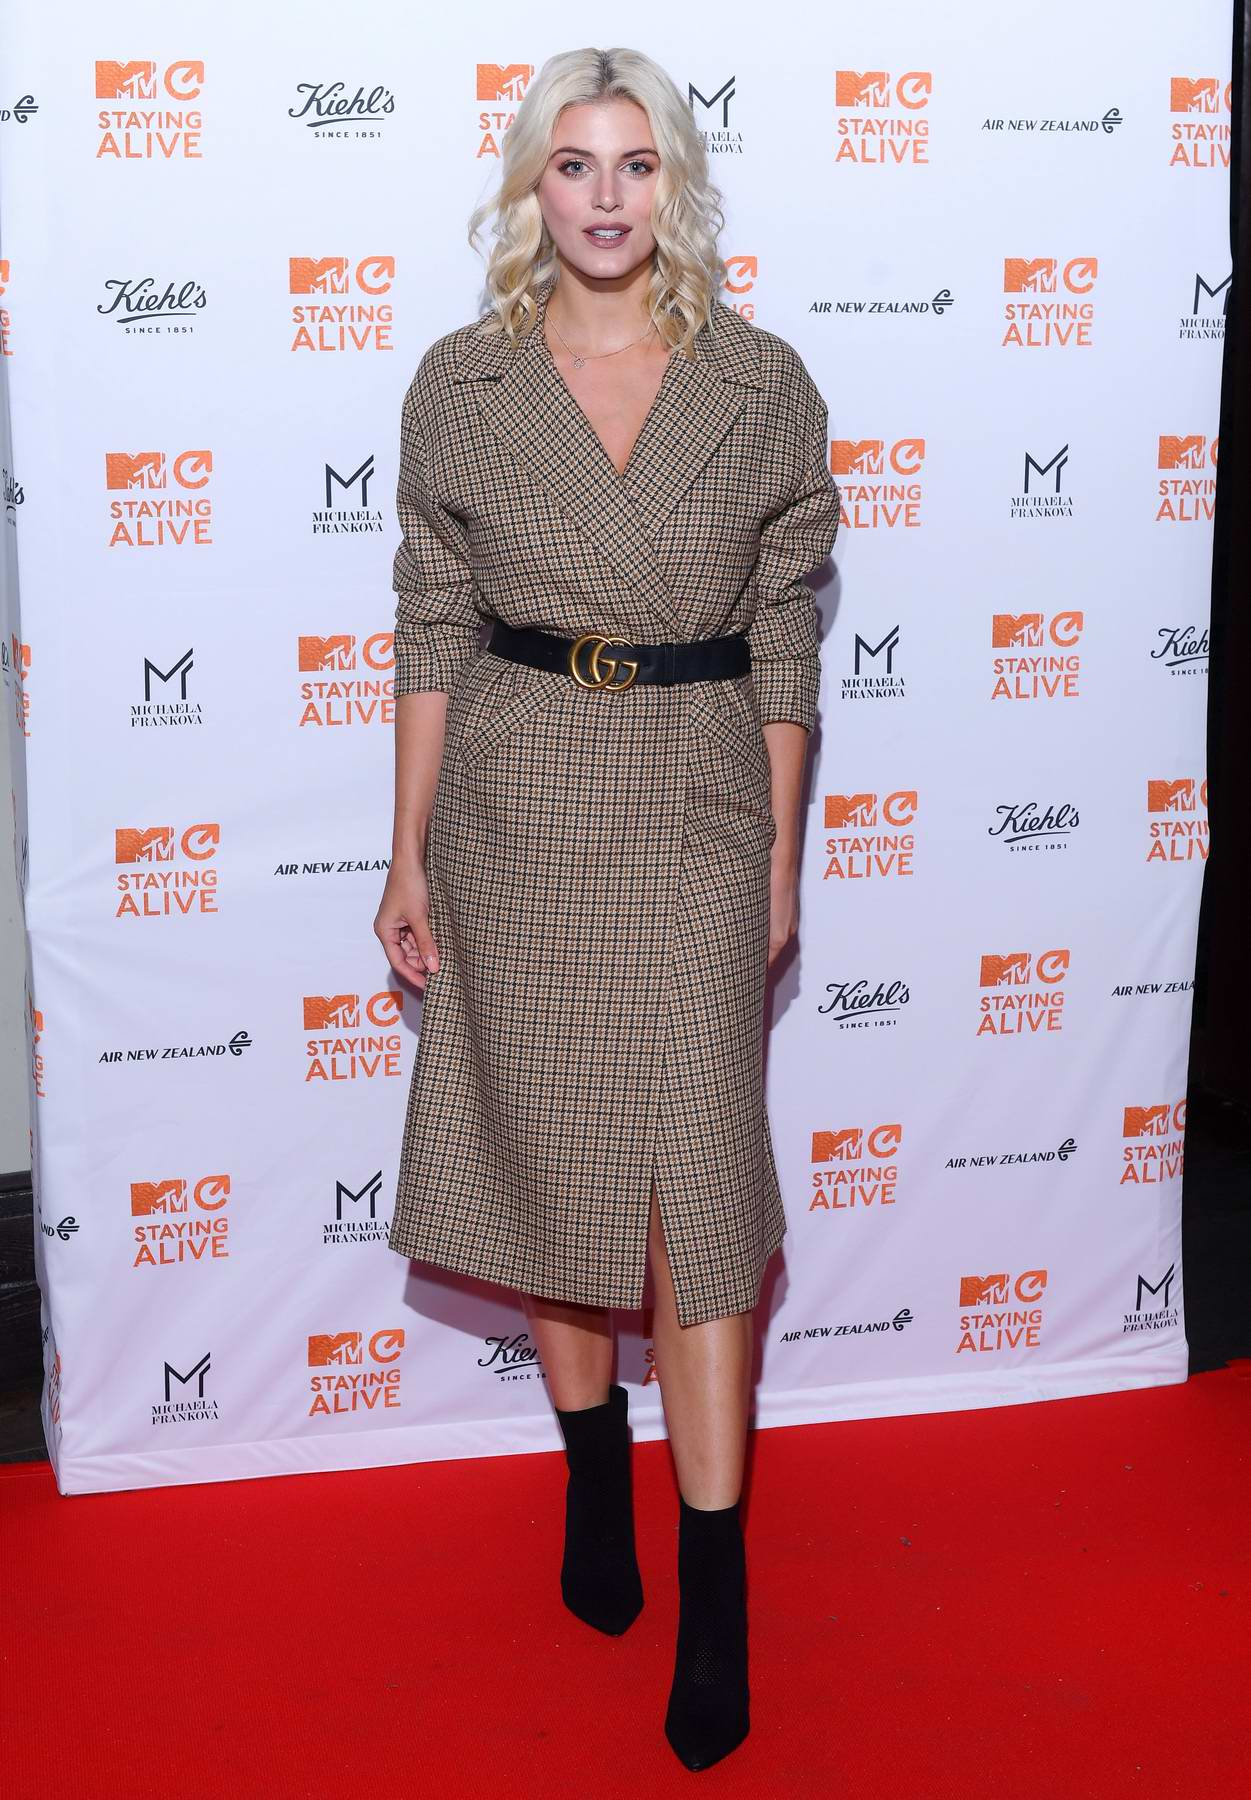 Ashley James attends the MTV Staying Alive gala at 100 Wardour Street in London